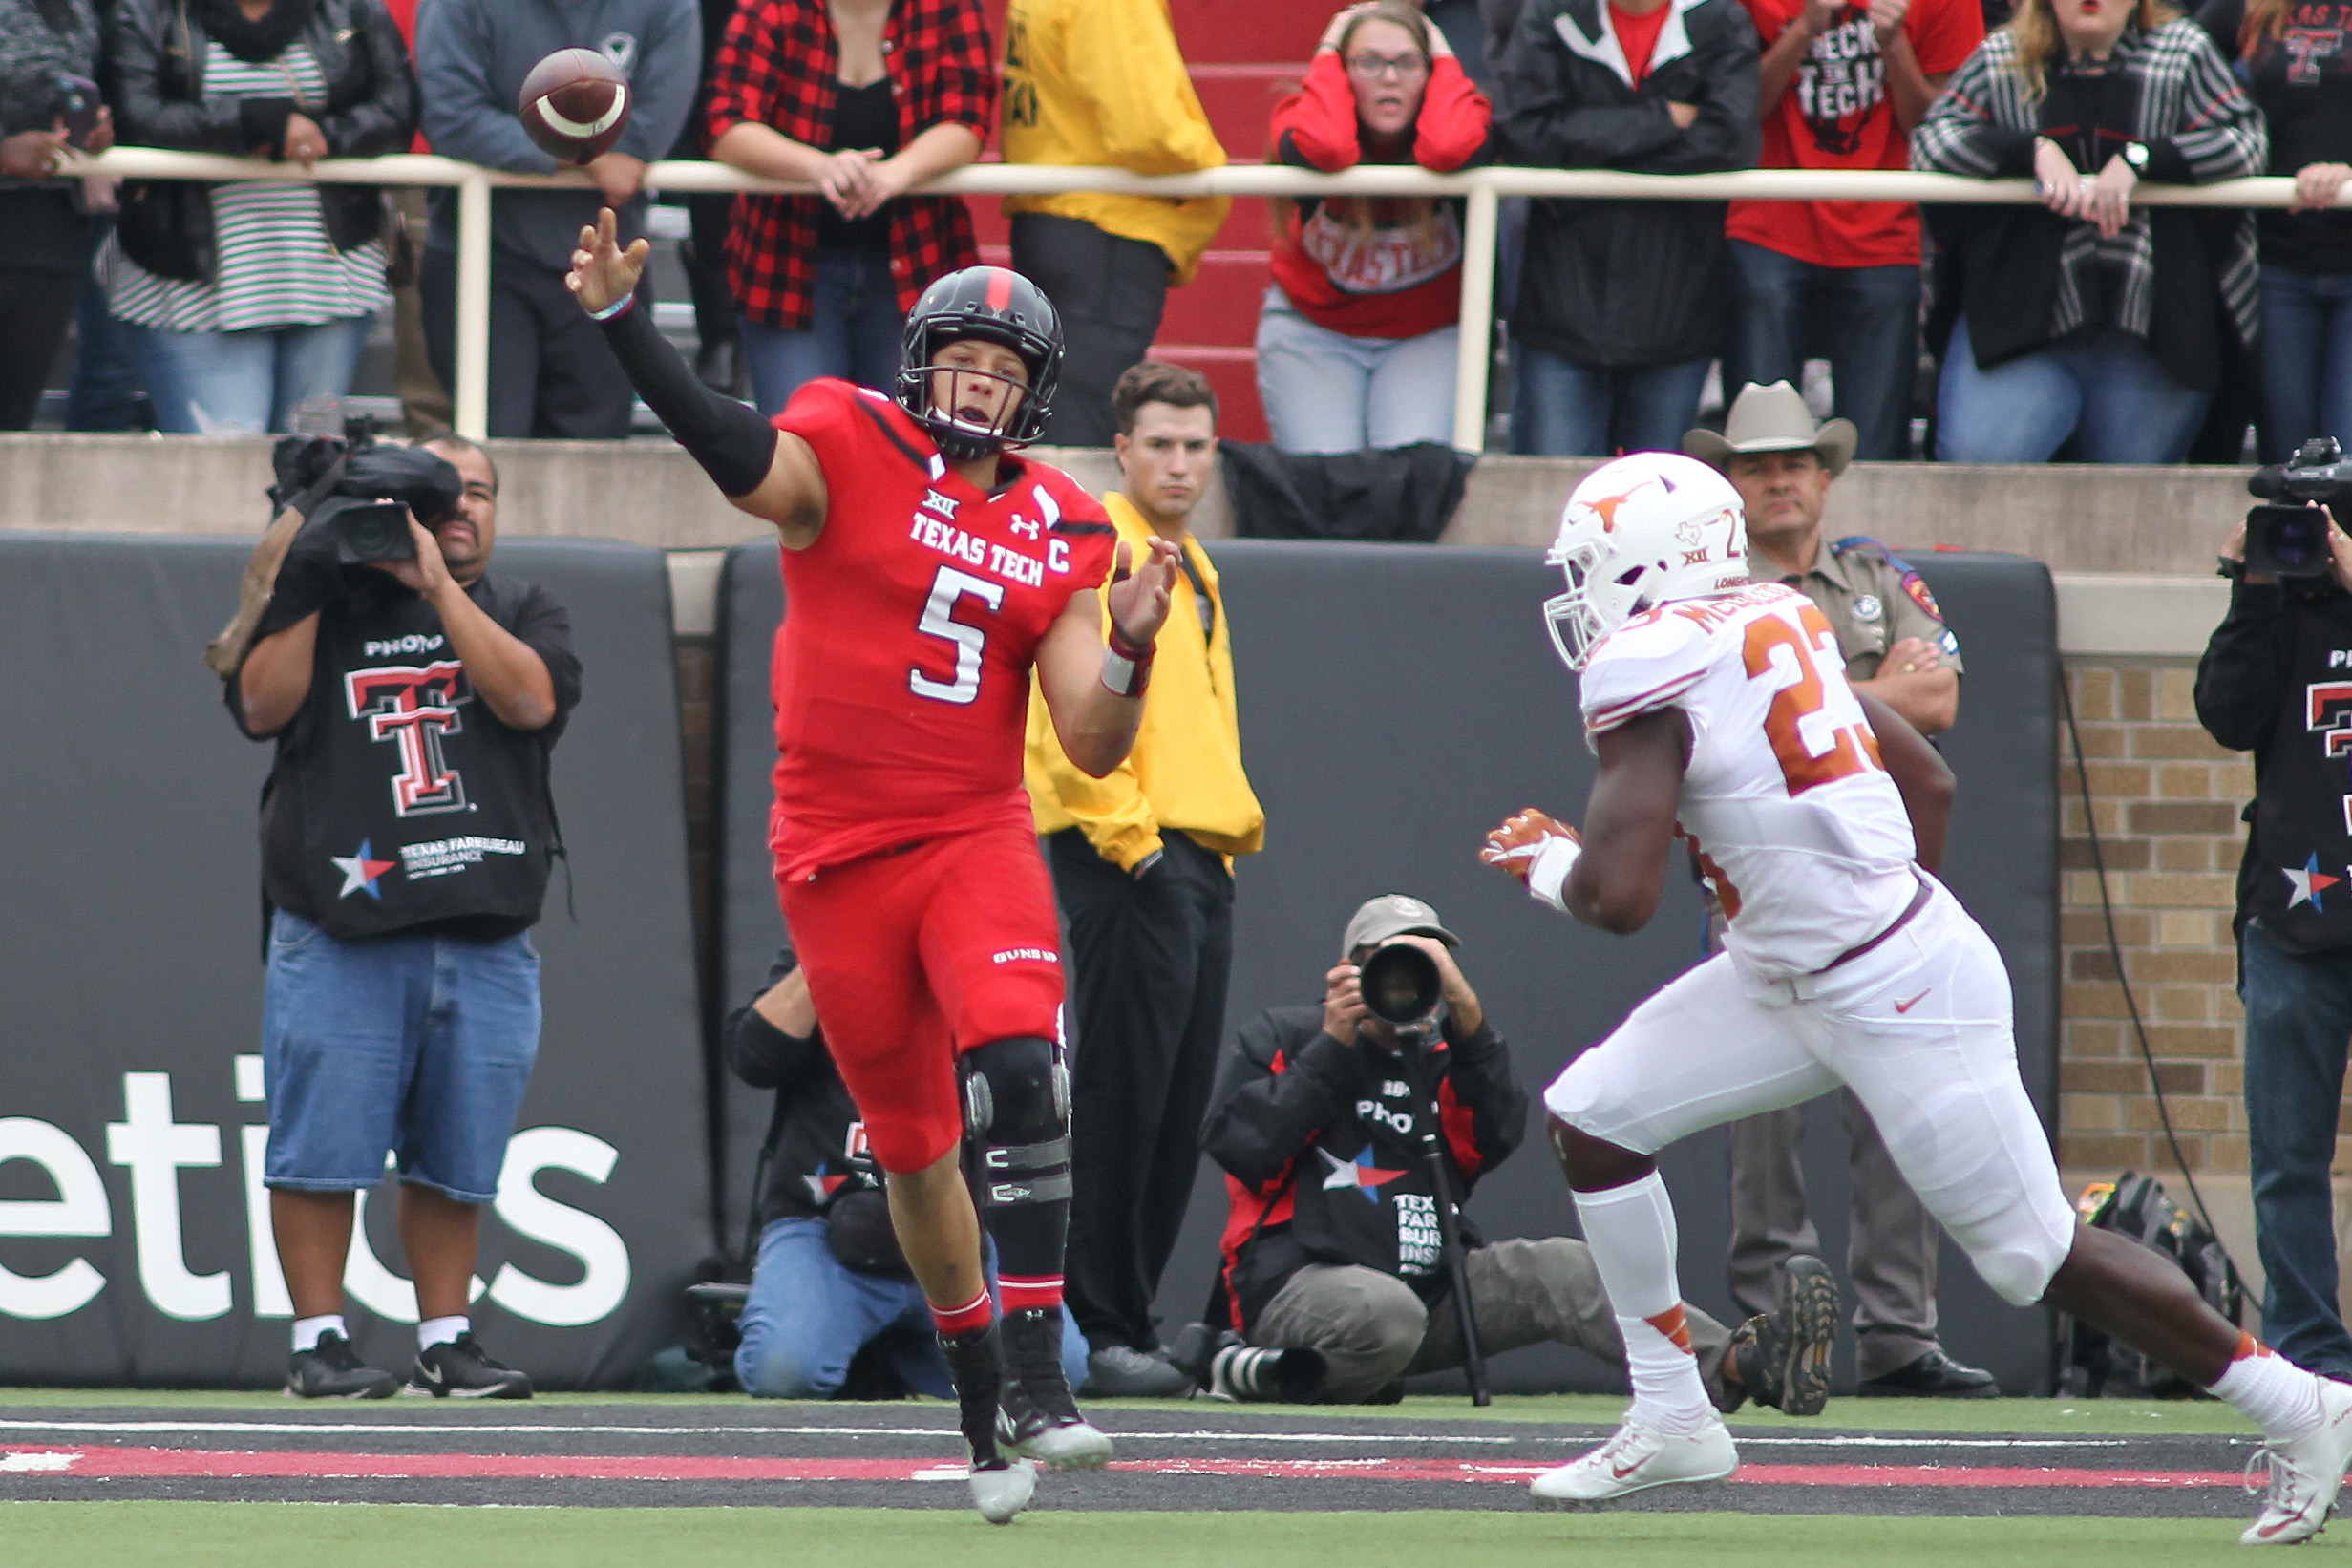 Nov 5, 2016; Lubbock, TX, USA; Texas Tech Red Raiders quarterback Patrick Mahomes (5) throws a pass against the University of Texas Longhorns in the second half at Jones AT&T Stadium. UT defeated Texas Tech 45-37. Mandatory Credit: Michael C. Johnson-USA TODAY Sports